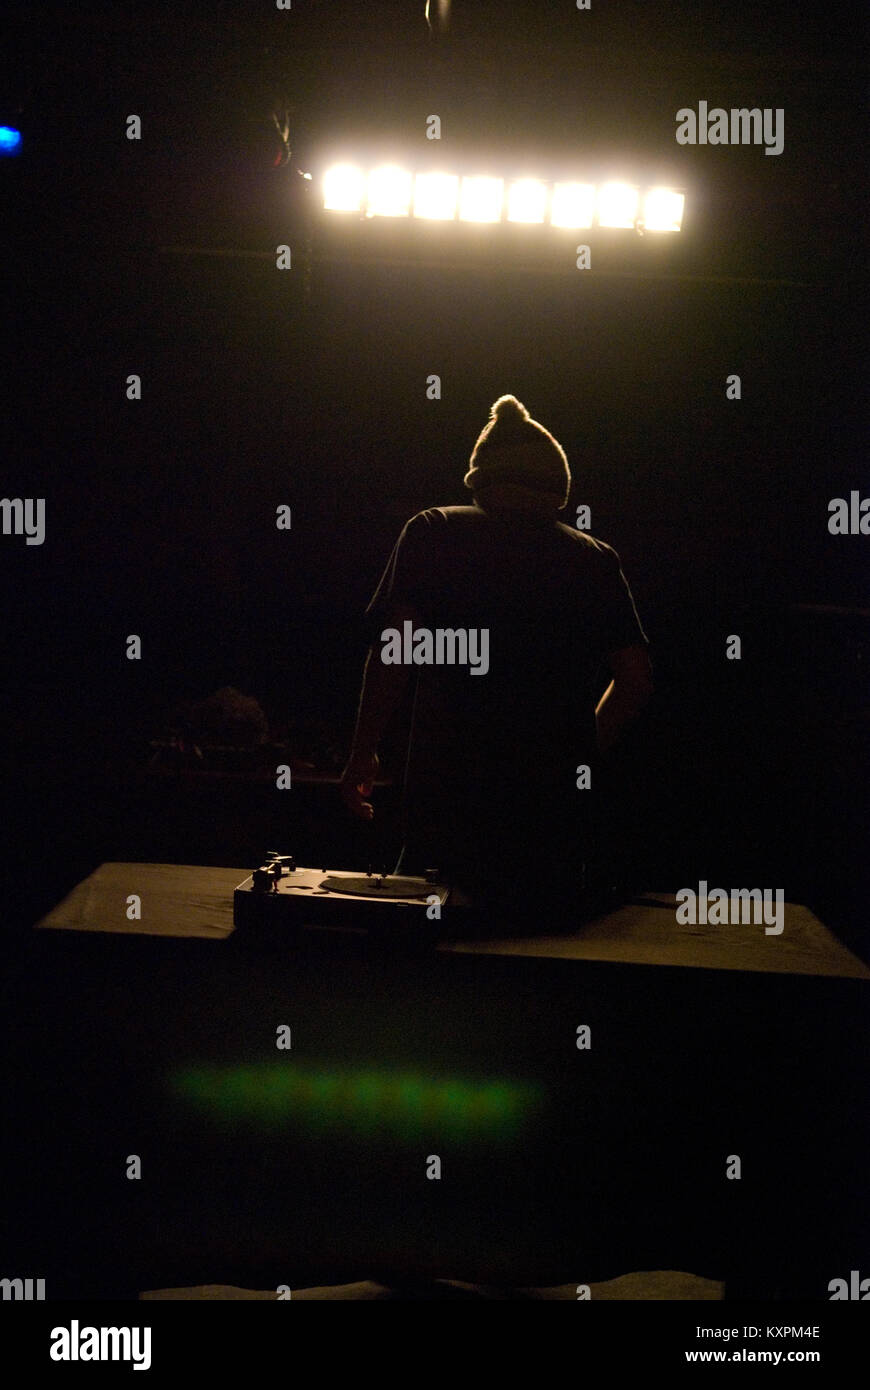 a DJ with a woolly hat selects vinyl records to play on his tunrtable in this low light club scene - Stock Image